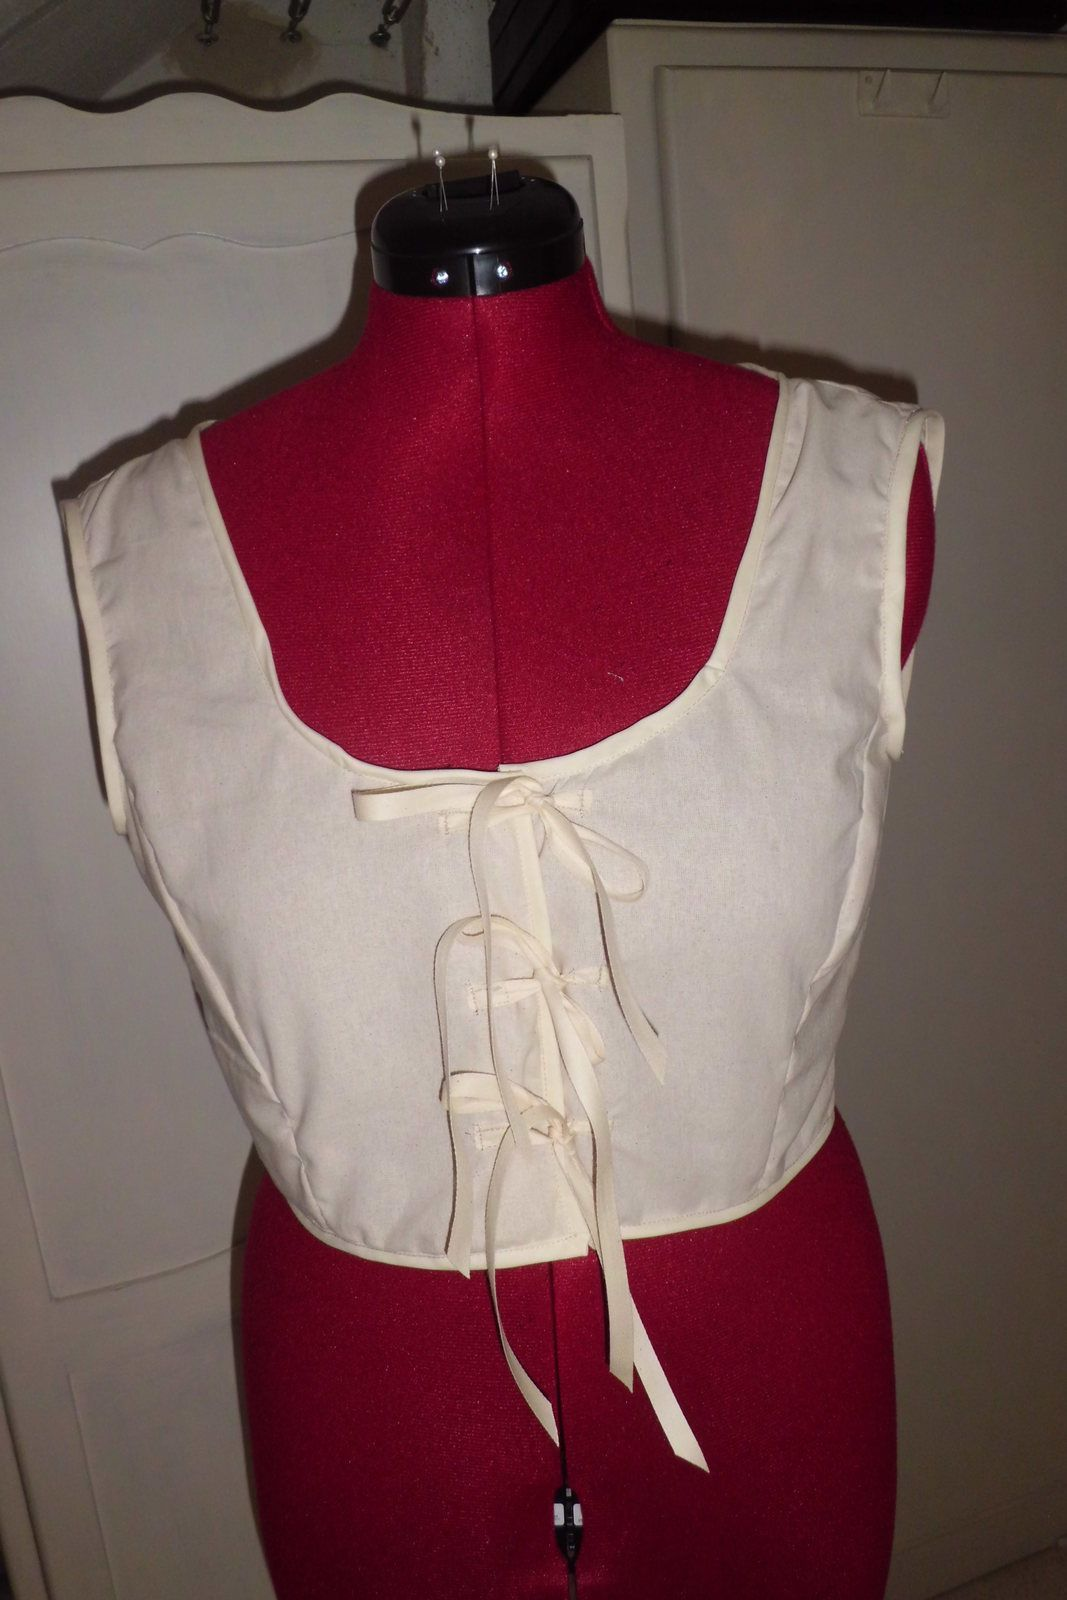 """Le cache-corset """"nu"""" sans aucune broderie / The camisole """"naked"""" without any embroidery"""